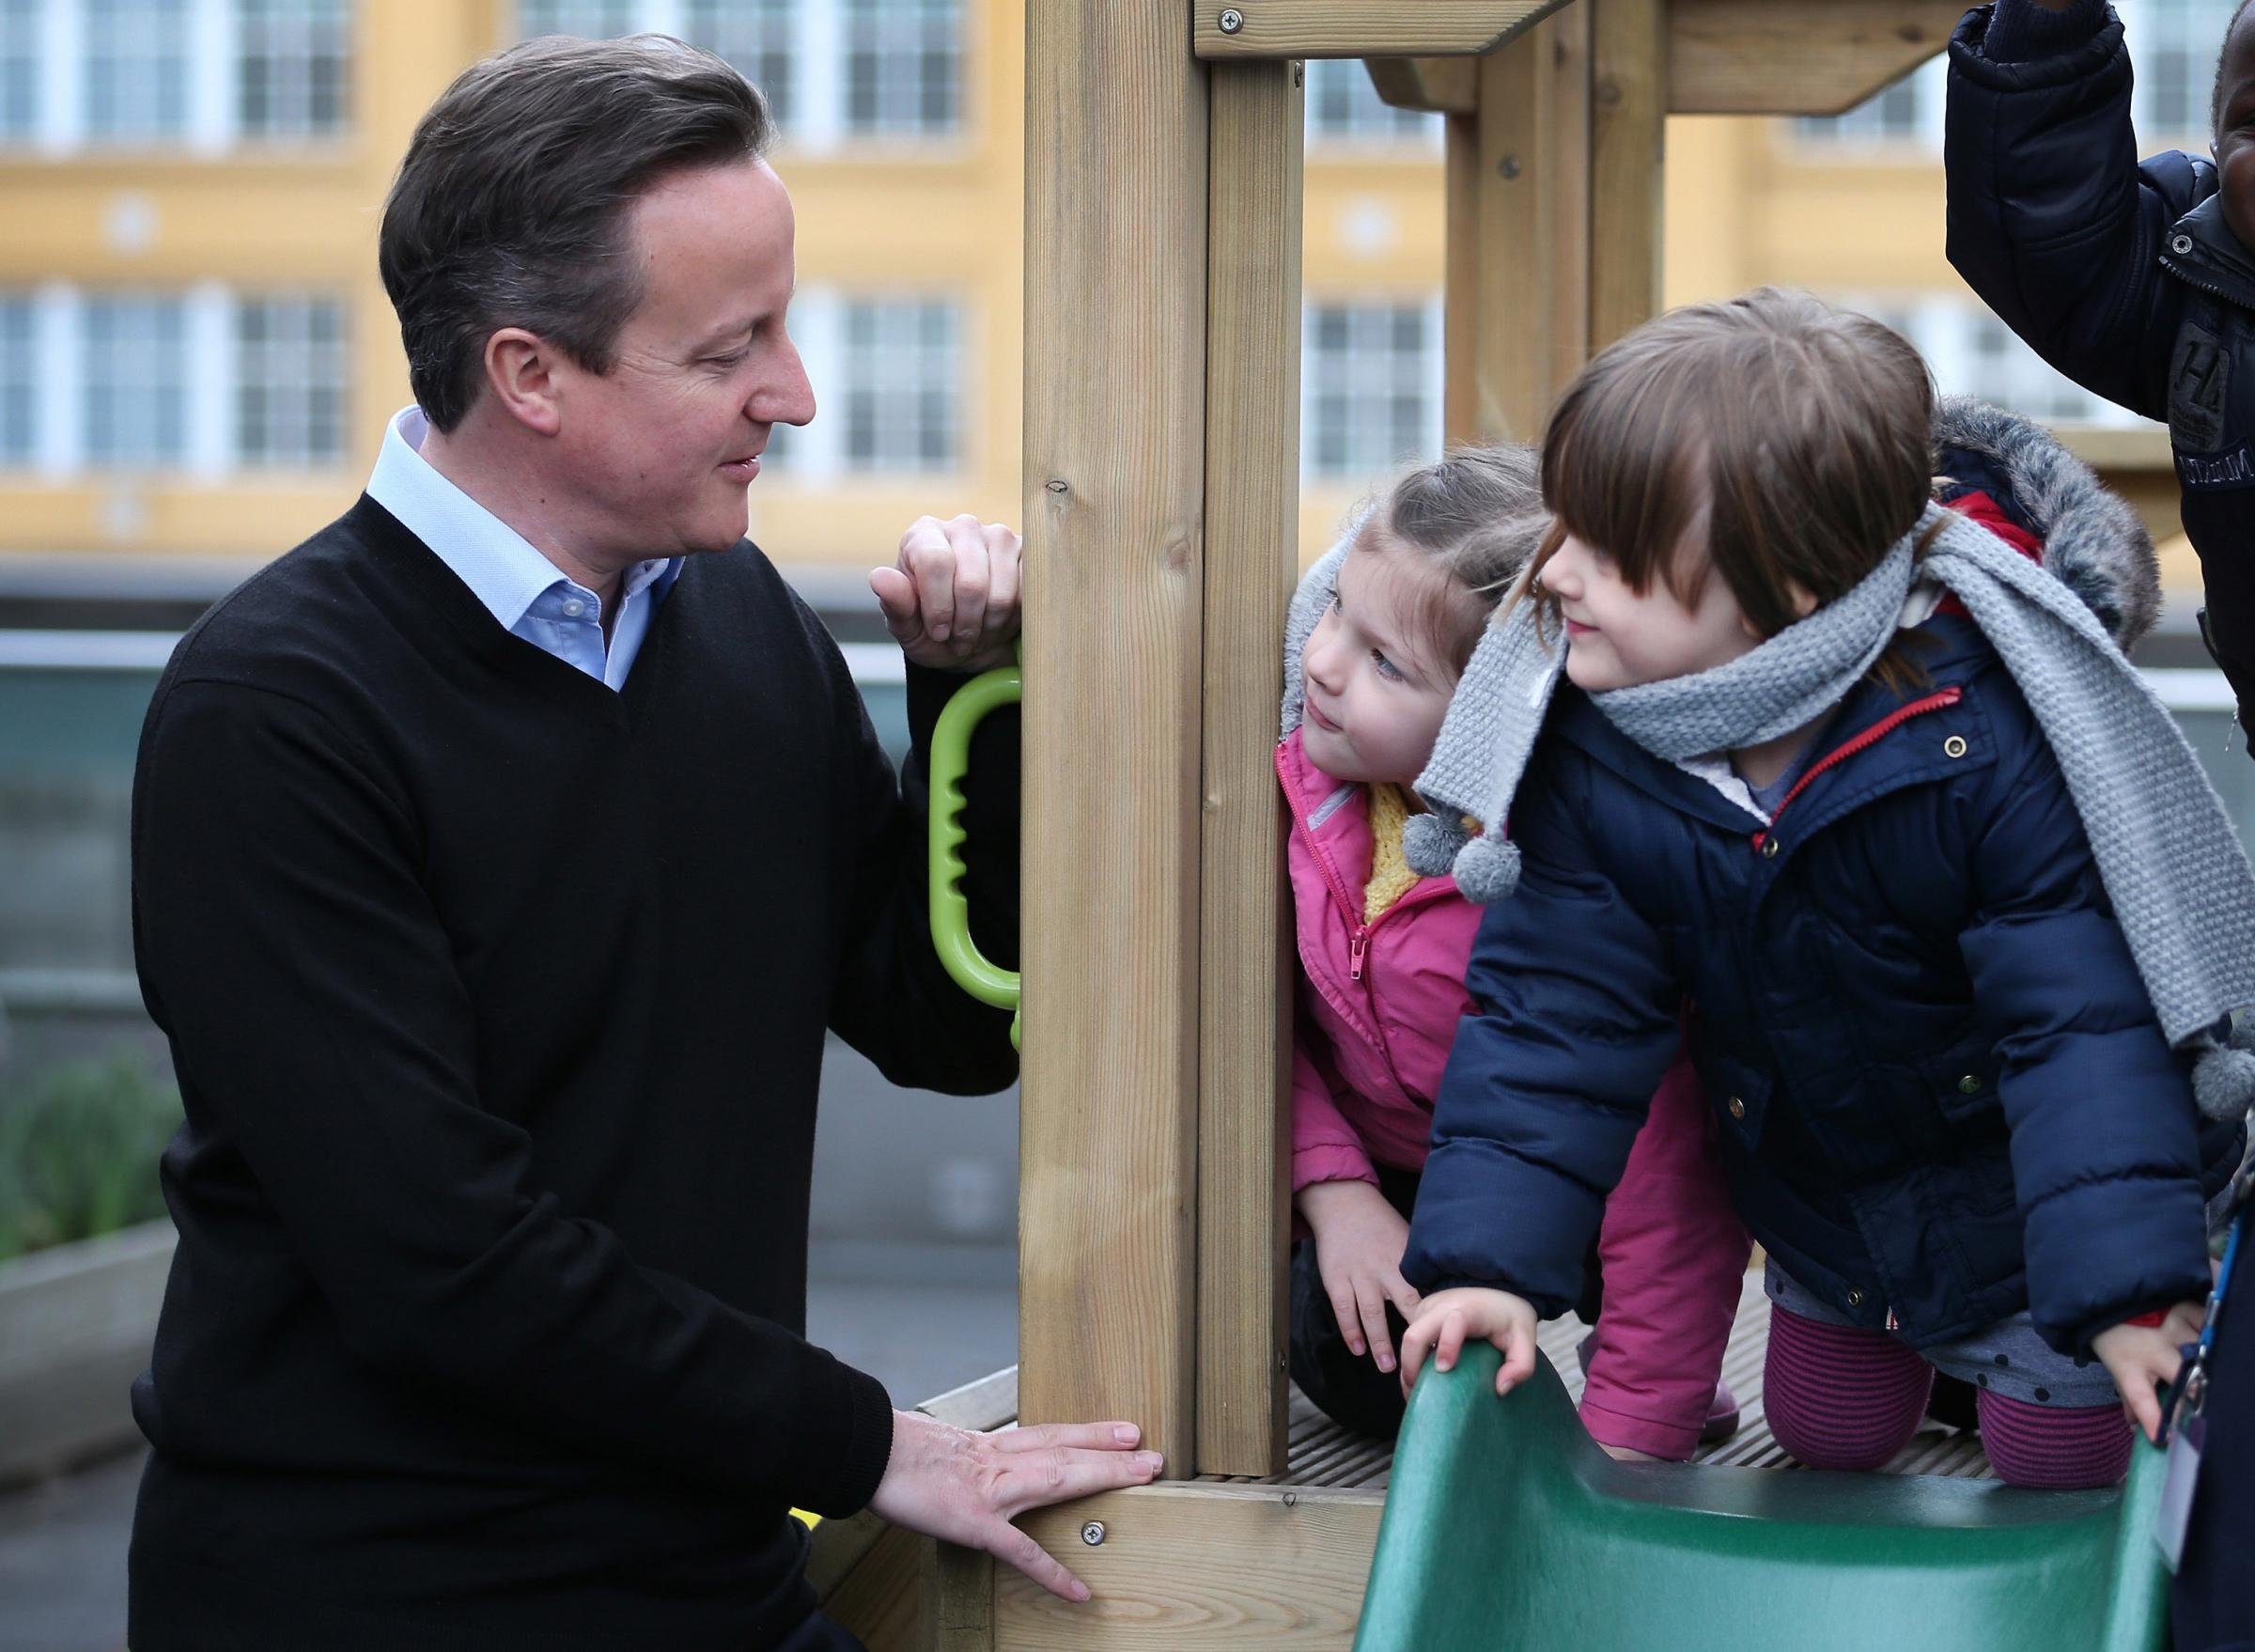 Children talk to Prime Minister David Cameron during a visit to the Coin Street nursery in London, as the government have announced a new tax-free childcare allowance